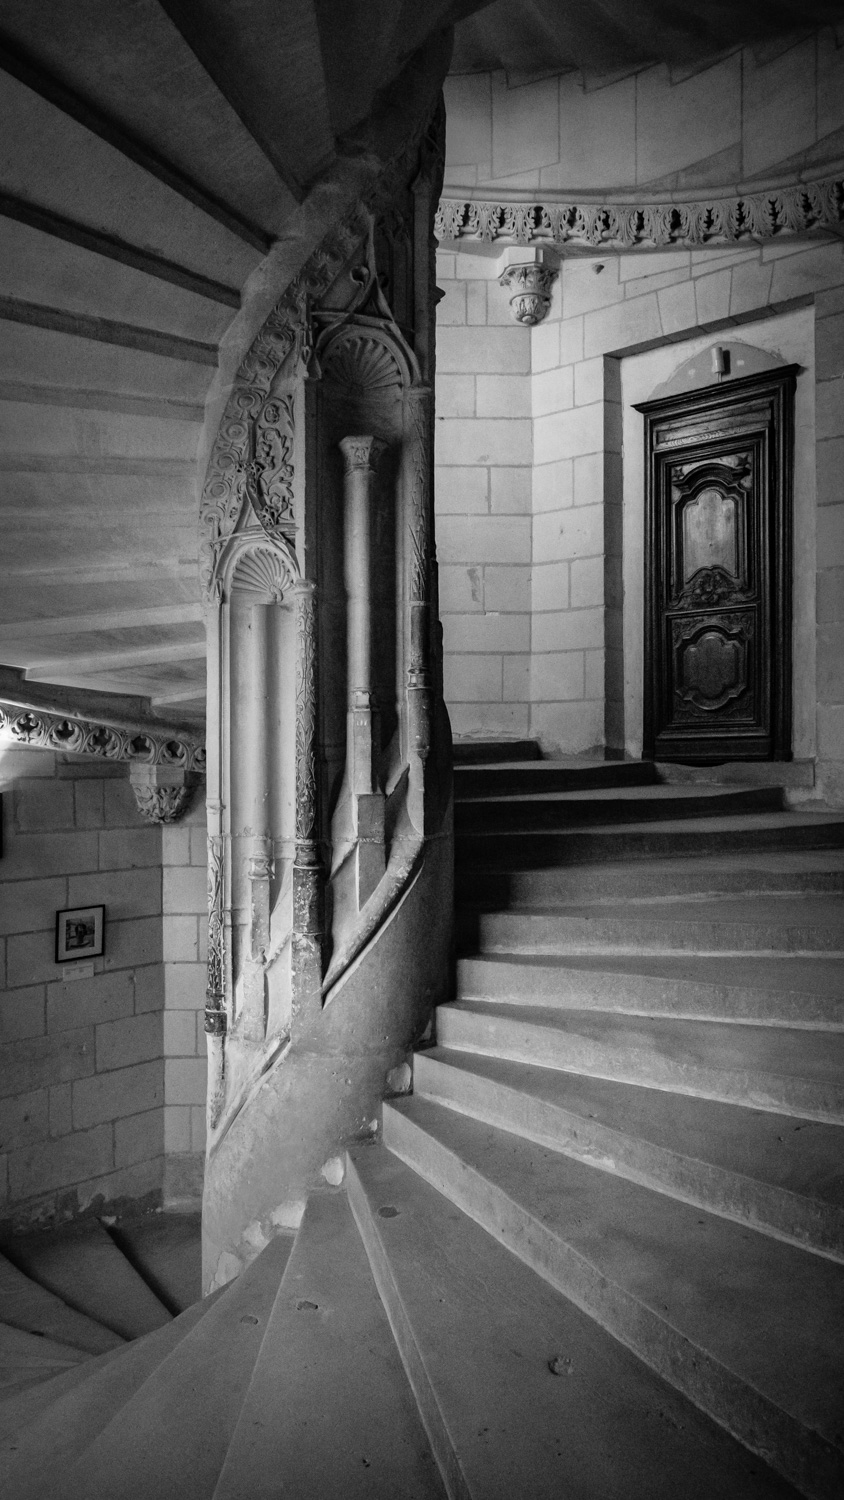 """The interior stairwell of Chaumont - Travel photography and guide by © Natasha Lequepeys for """"And Then I Met Yoko"""". #loirevalley #france #travelguide #travelphotography #valdeloire"""